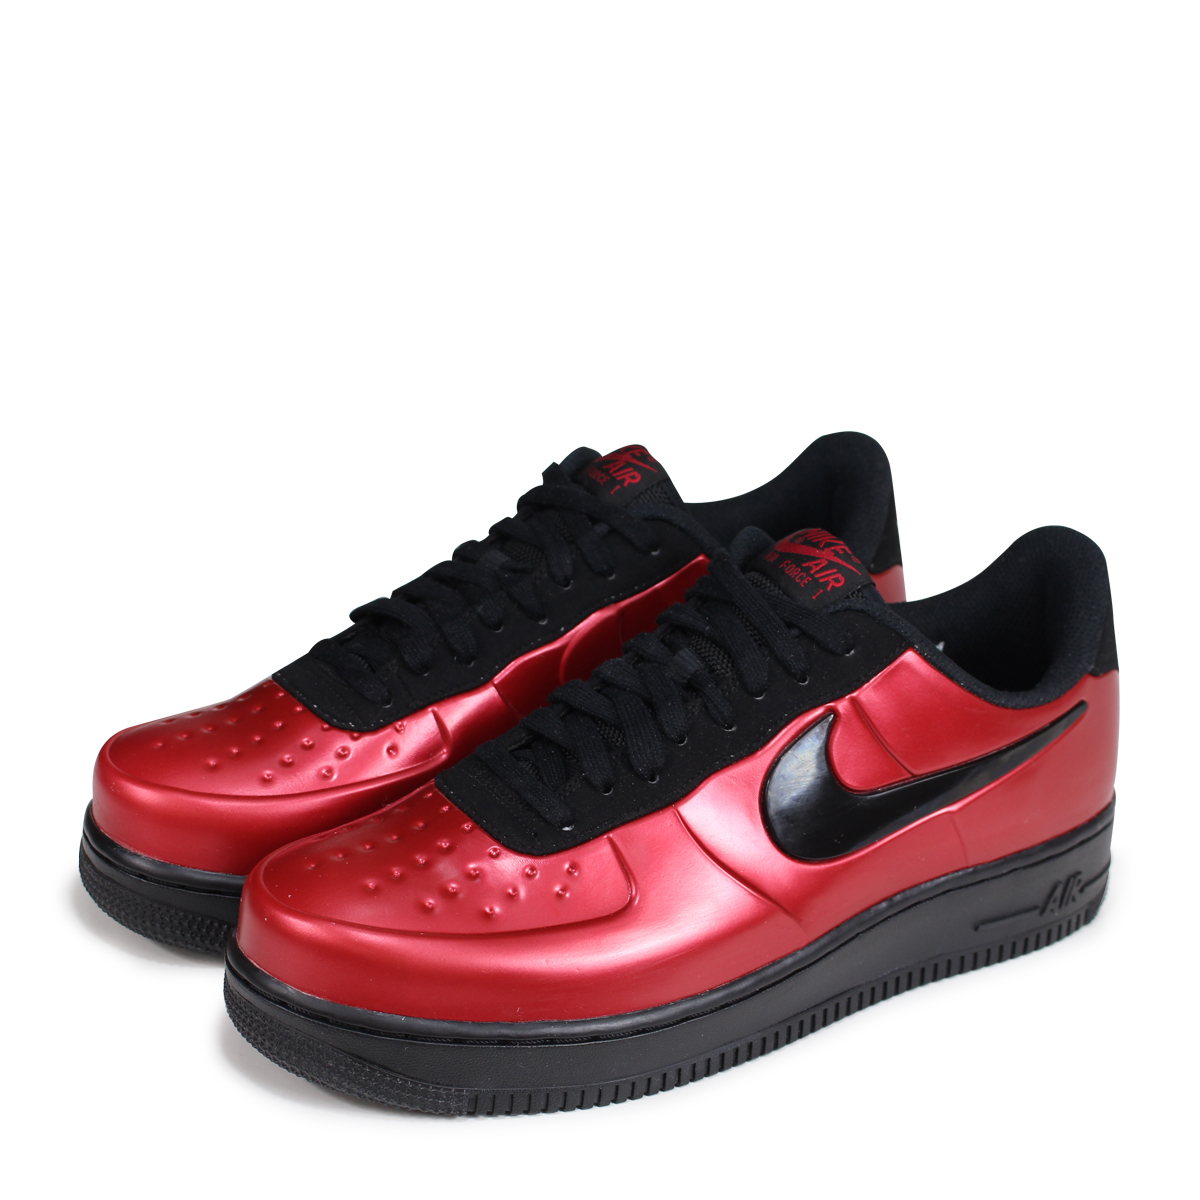 61c54652191 ALLSPORTS  NIKE AIR FORCE 1 FOAMPOSITE PRO CUP AF1 Nike air force 1 ...